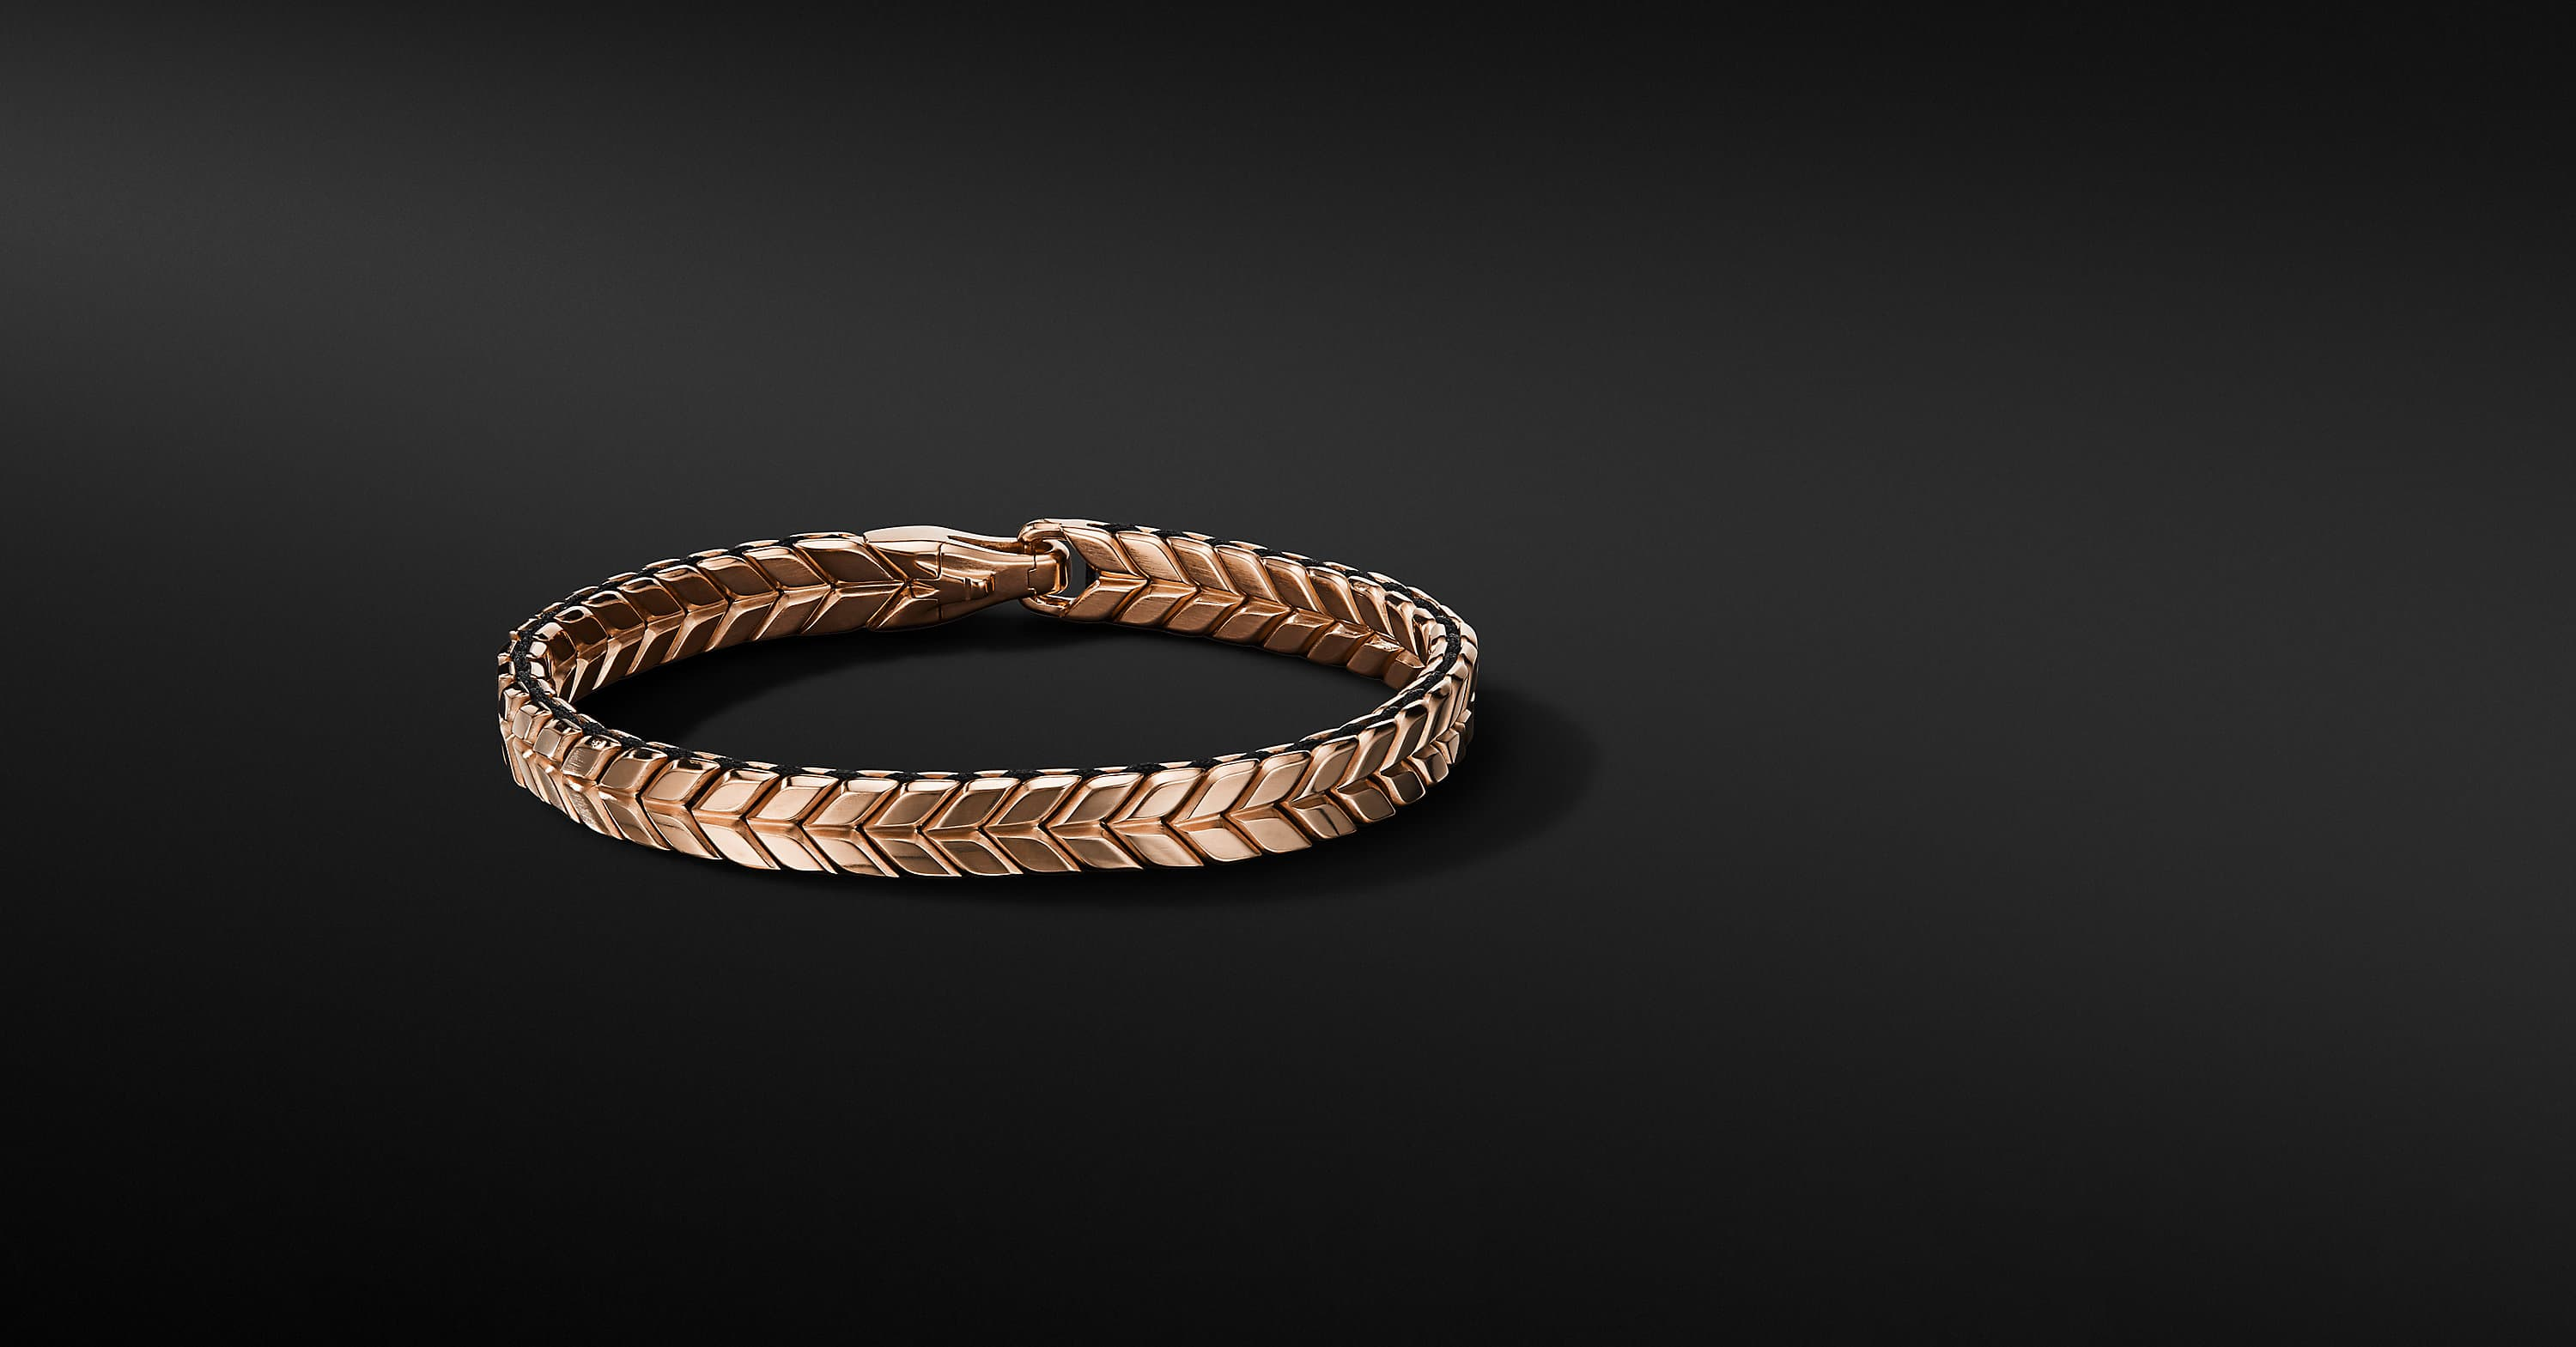 Chevron Woven Bracelet in 18K Rose Gold